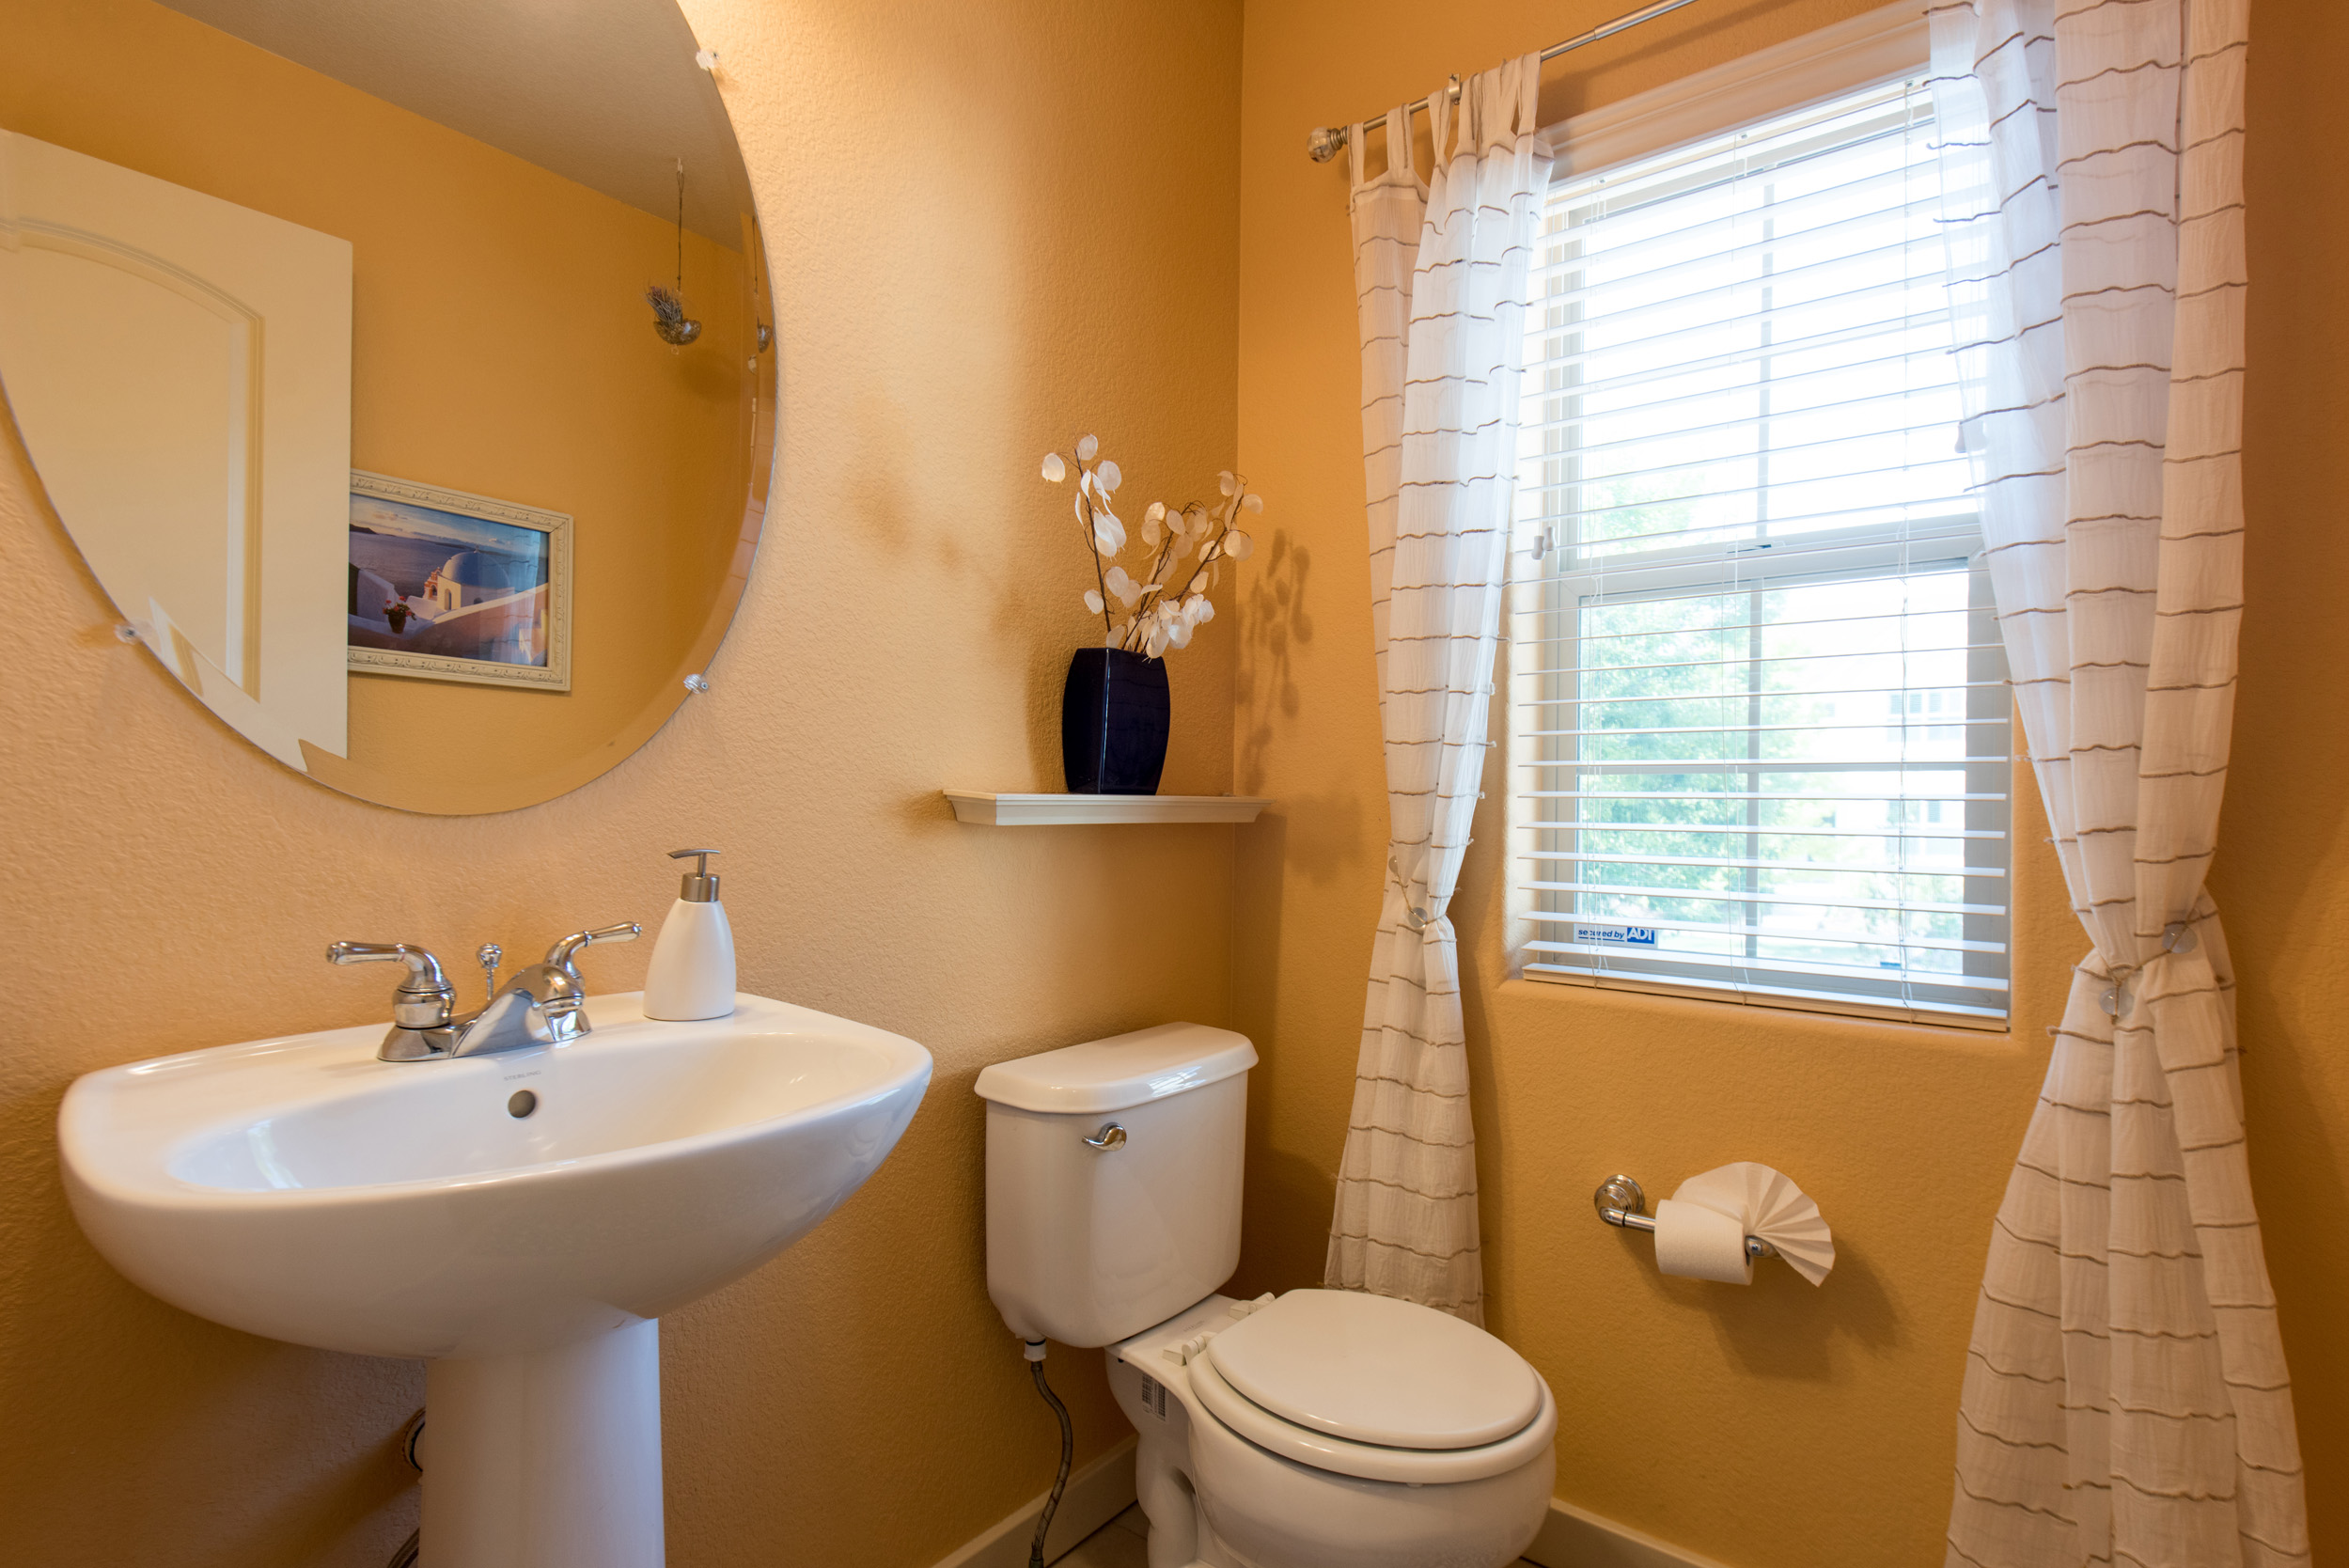 Britt_Nemeth_Photography_Real_Estate_Commercial_Architectural020.jpg